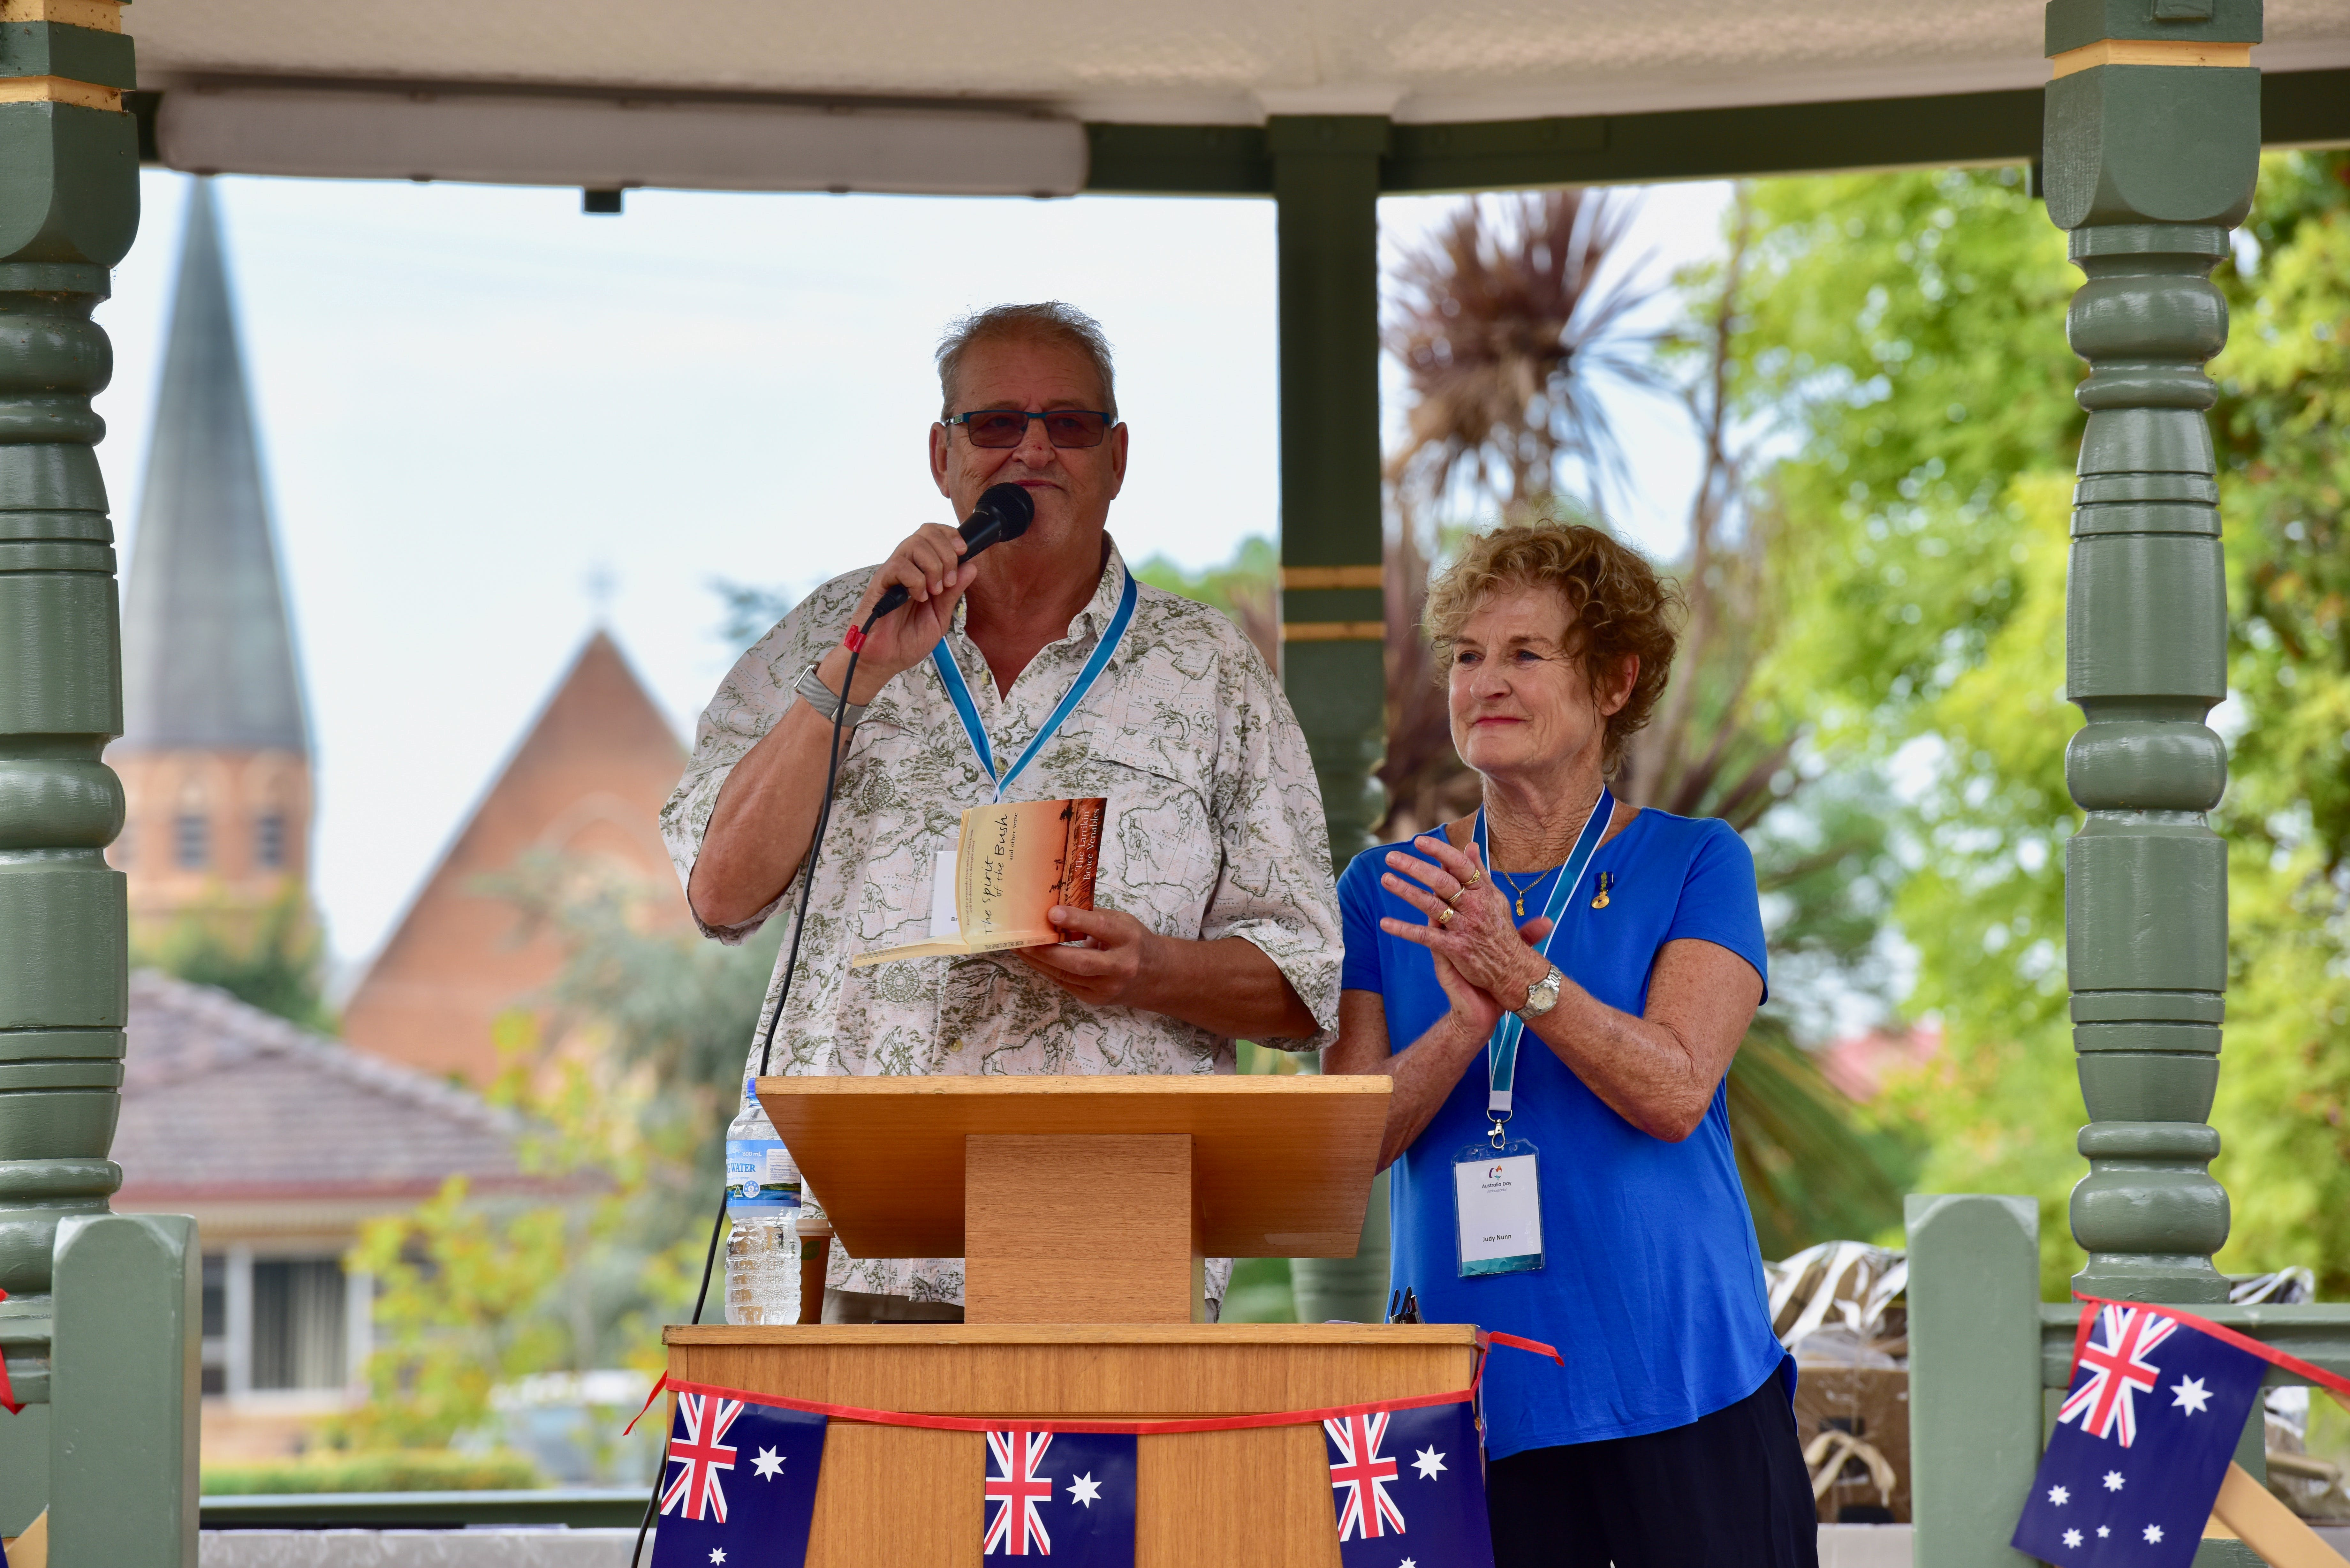 Australia Day 2018 Ambassadors Bruce Venables and Judy Nunn